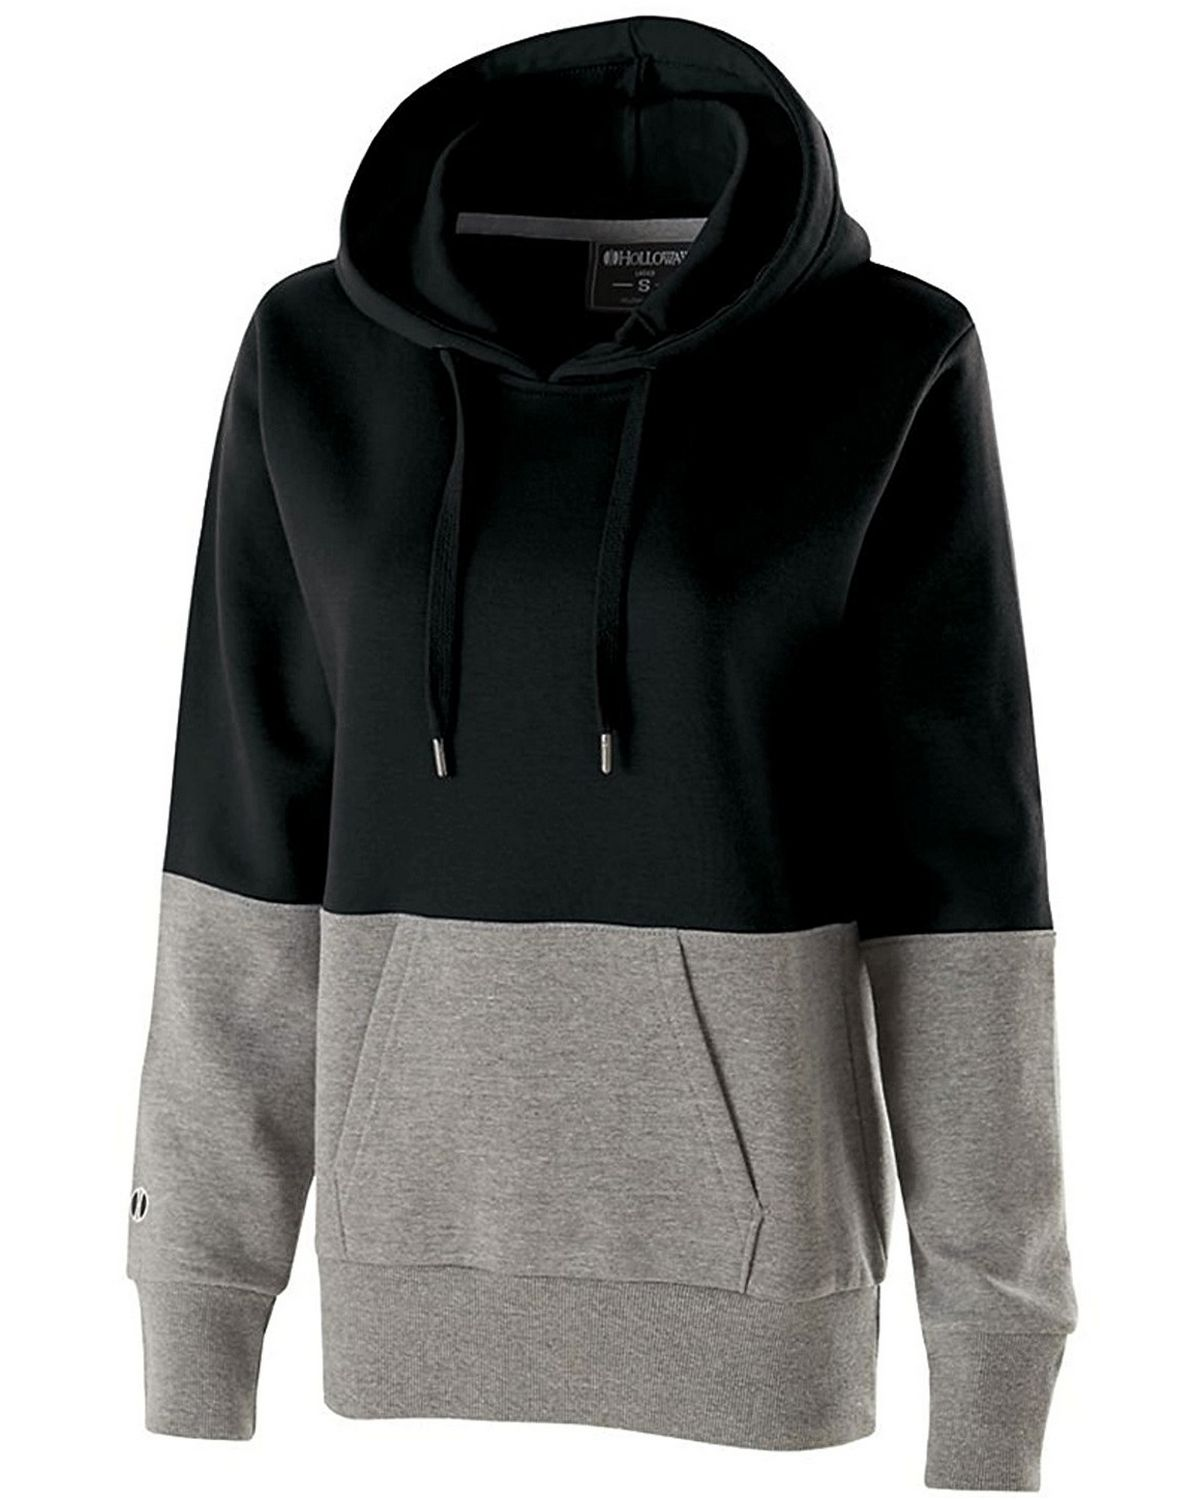 Holloway 229378 Cotton/Poly Ration Hoodie - Black/Charcoal Heather - L 229378